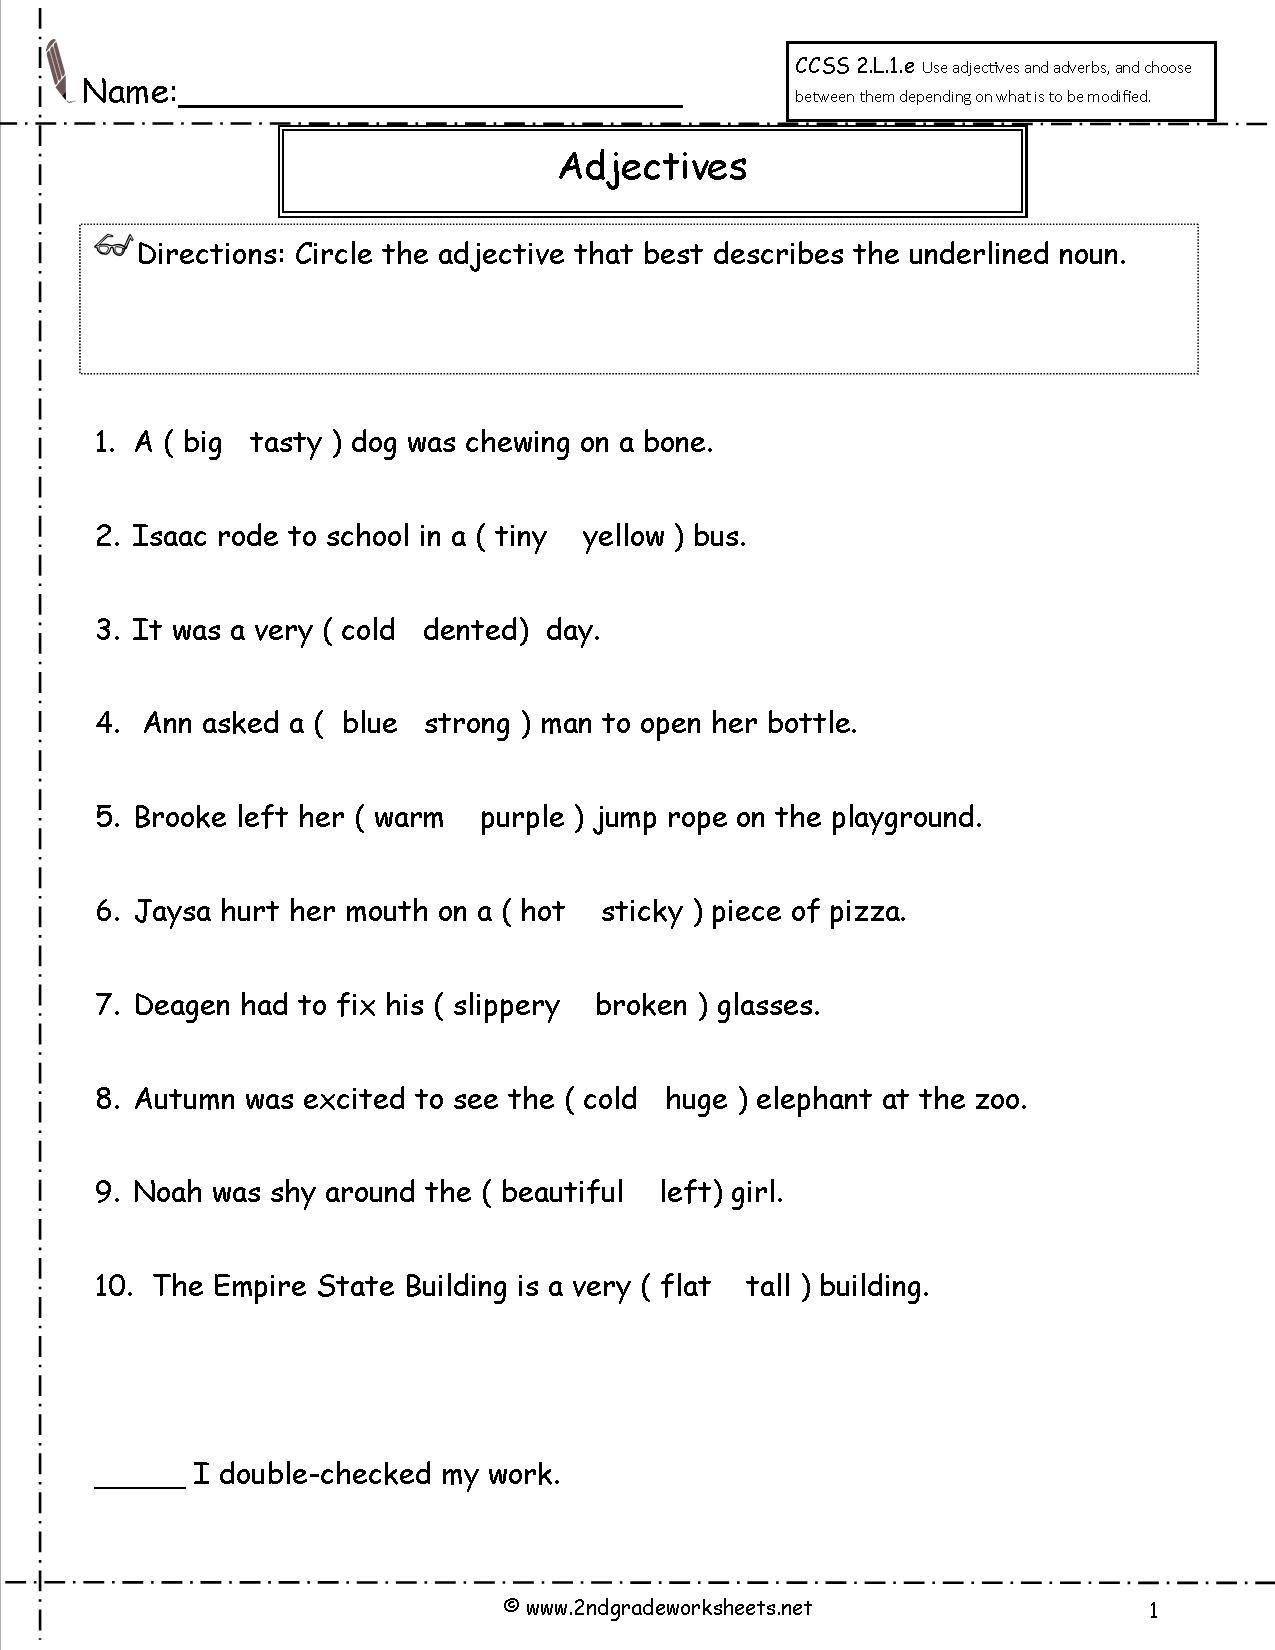 Adjective Worksheets 1st Grade Adjectives Worksheet